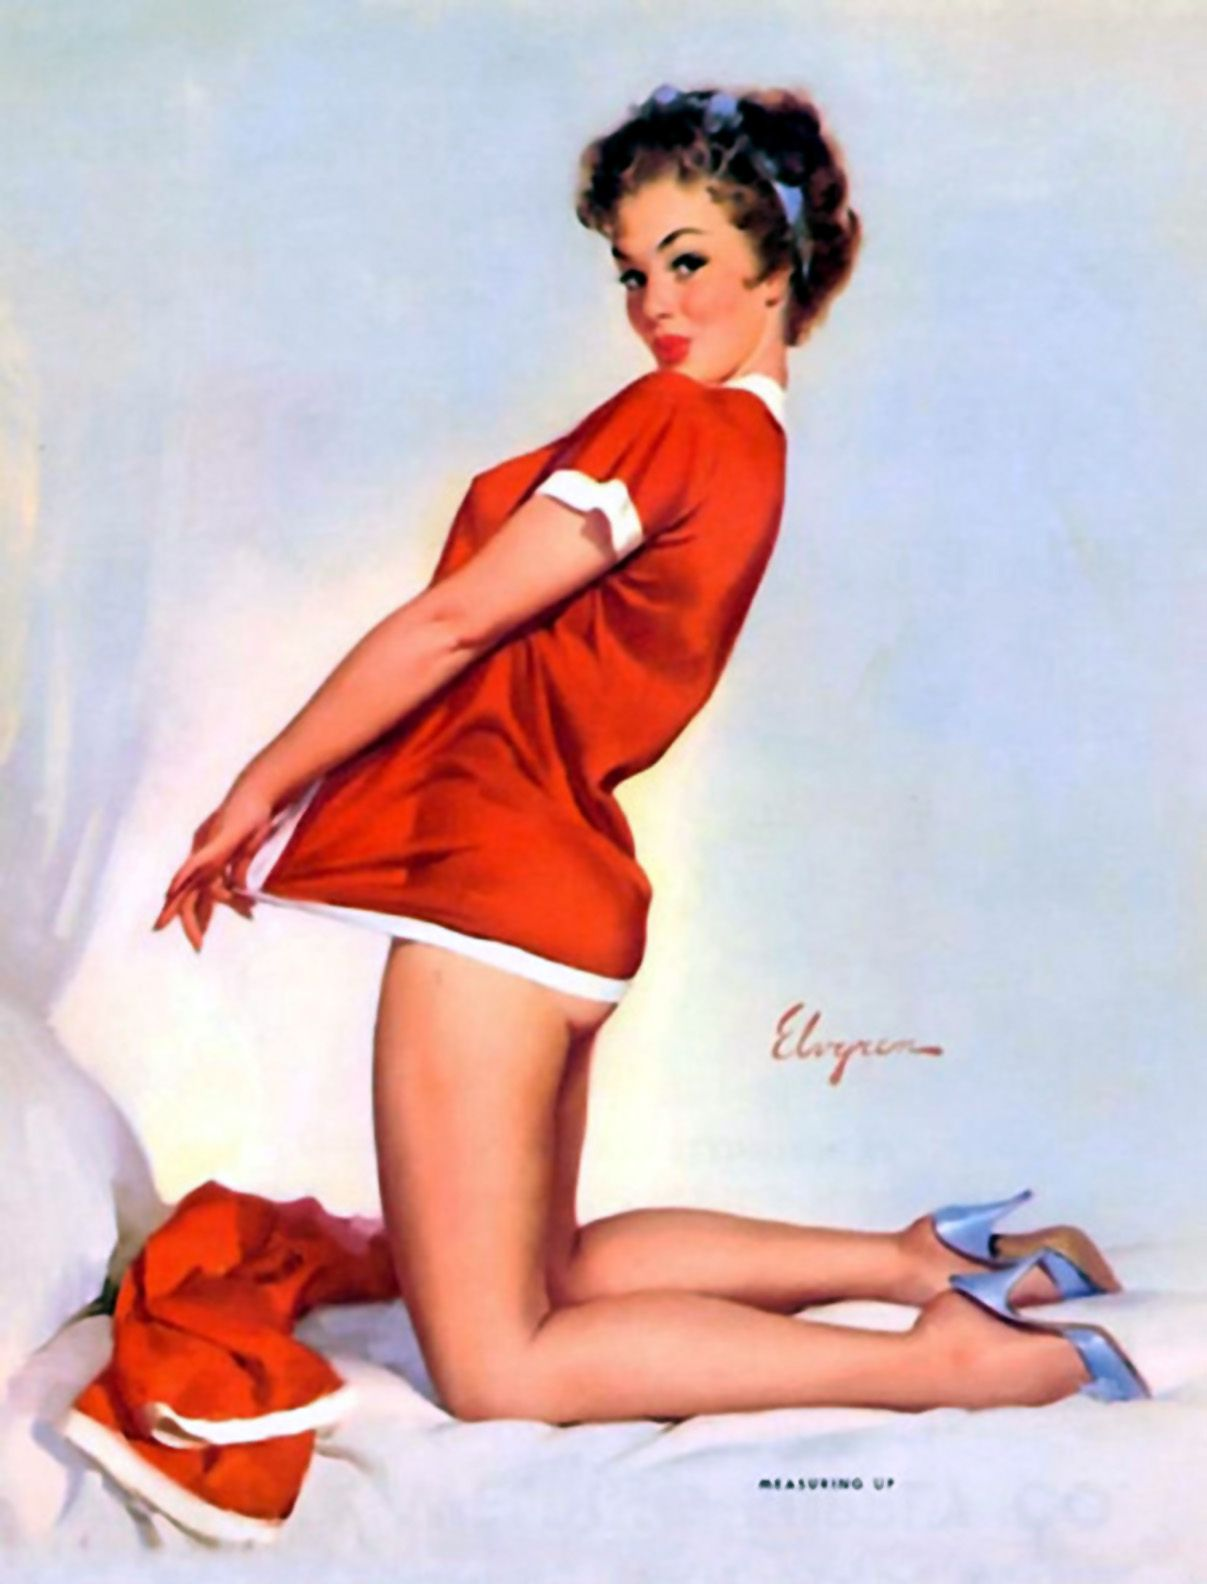 The amazing artistry of Gil Elvgren | Vintage Pinups | Pinterest ...